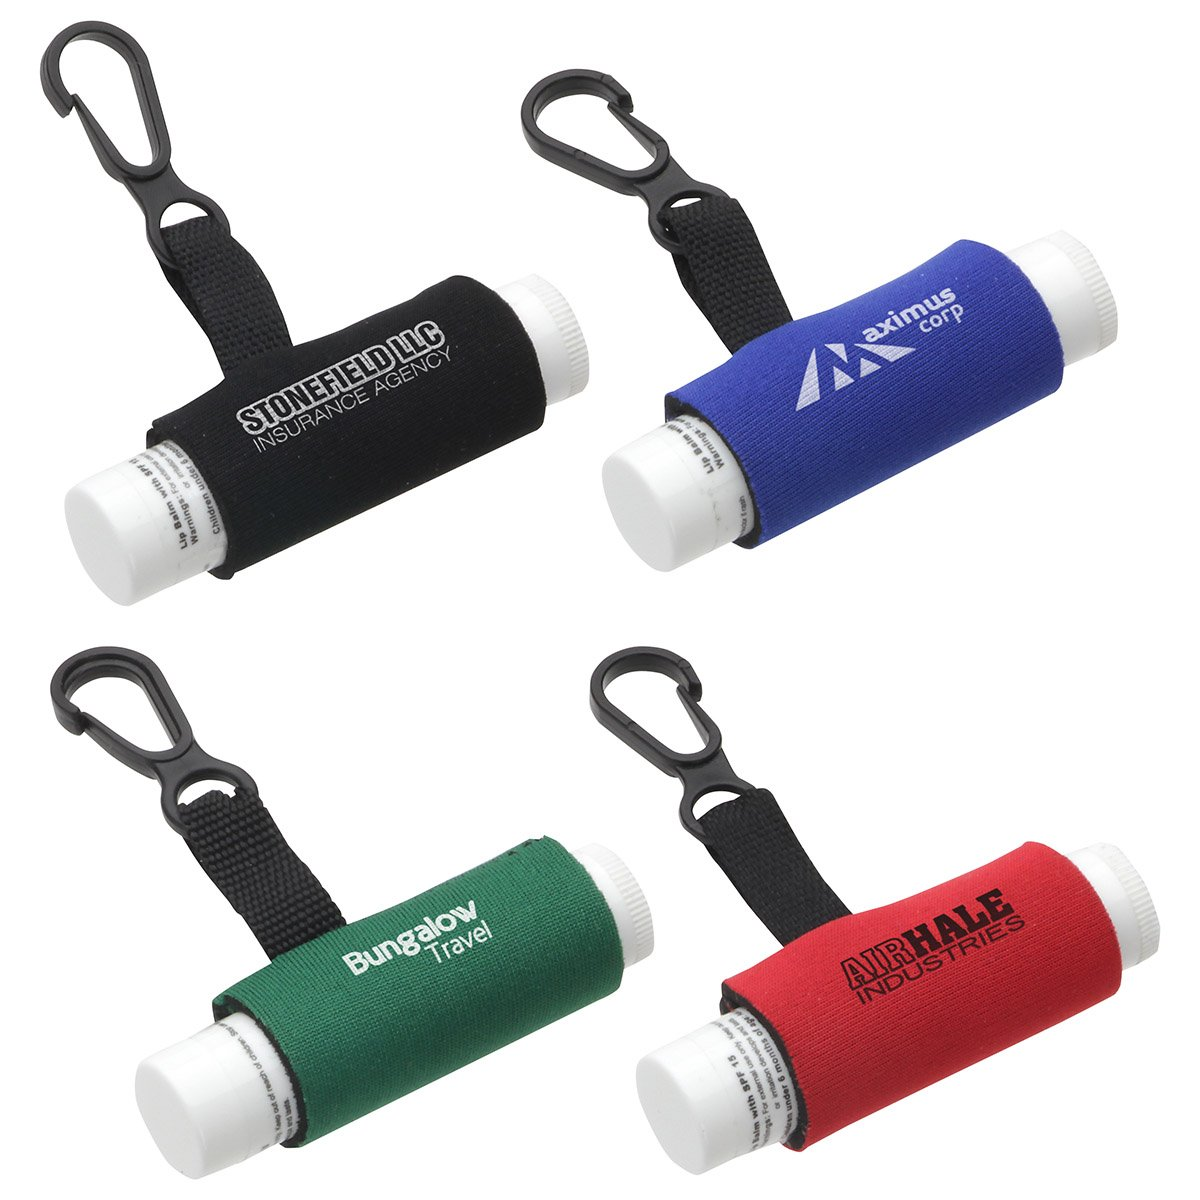 150 Personalized Clip-It Lip Balm Holder With Your Company Logo or Message